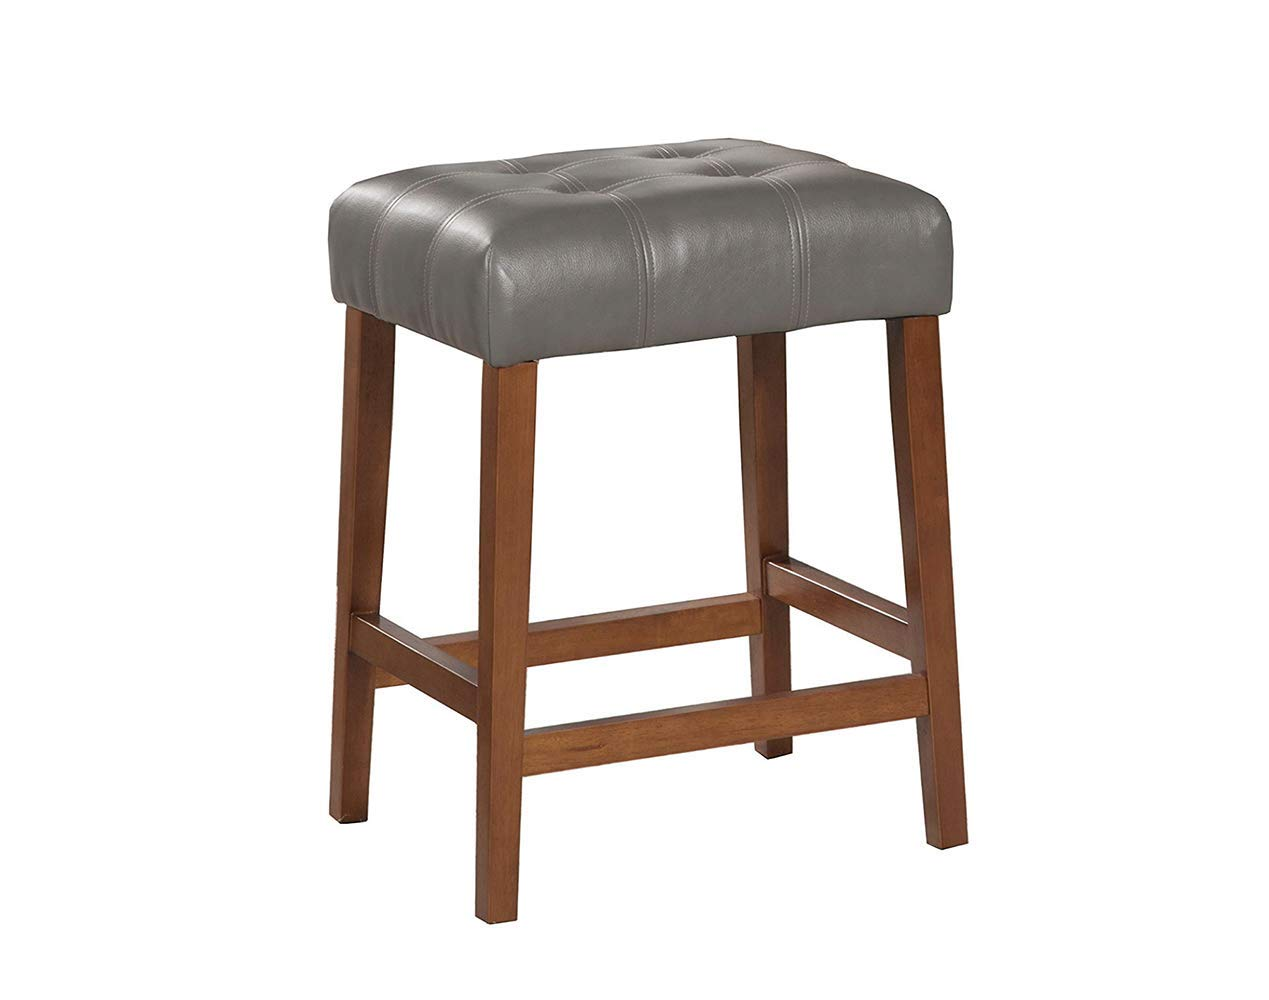 Kinfine HomePop Leatherette Square Tufted Counter Height Stool, Charcoal Grey